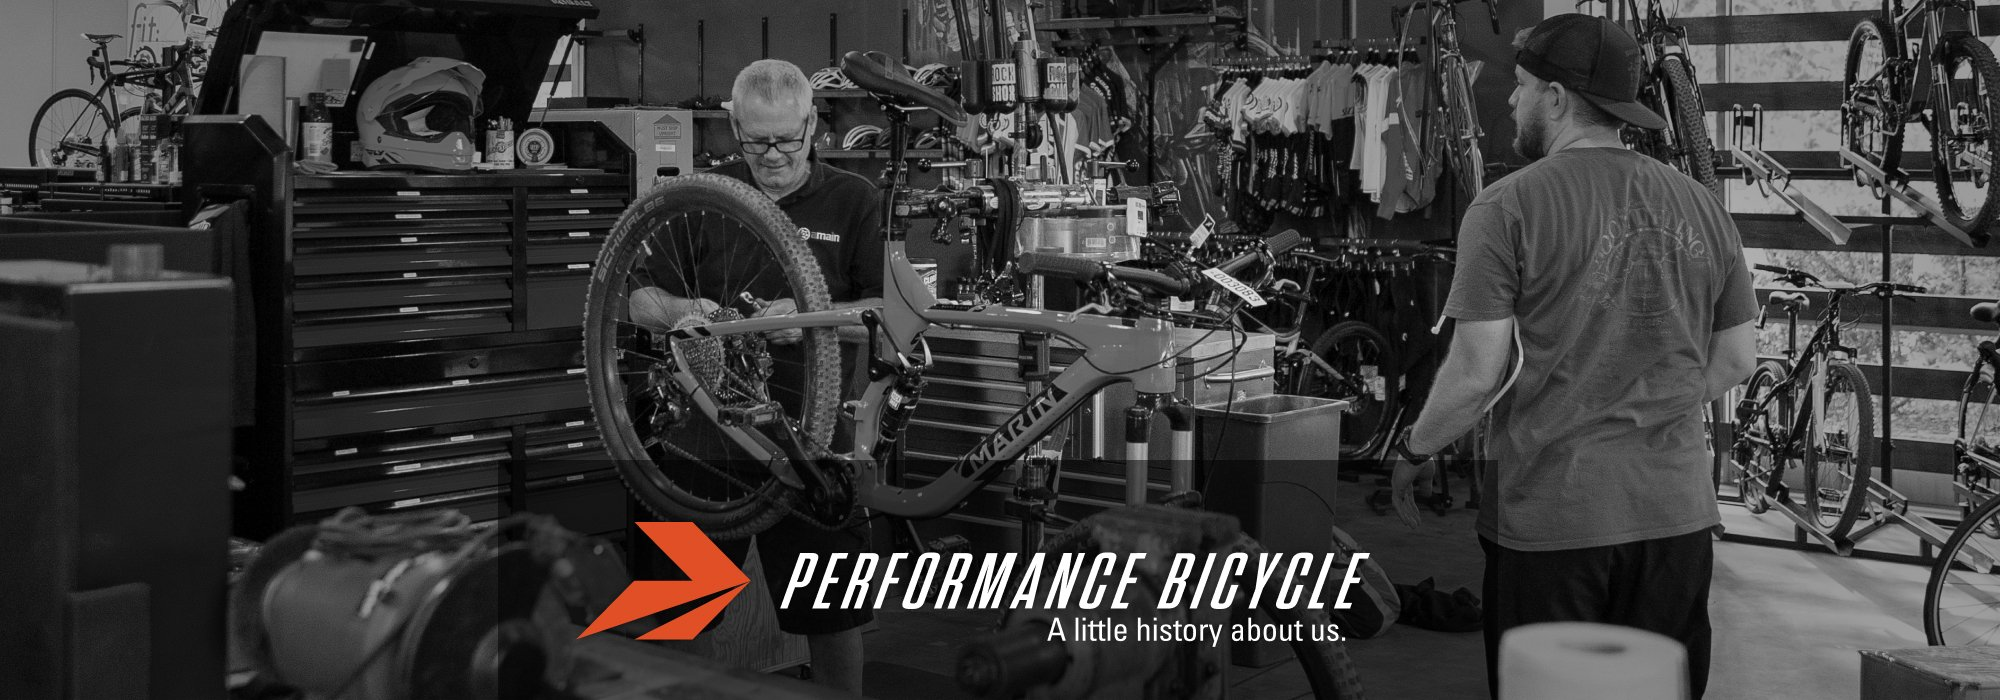 A Little History About Performance Bicycle